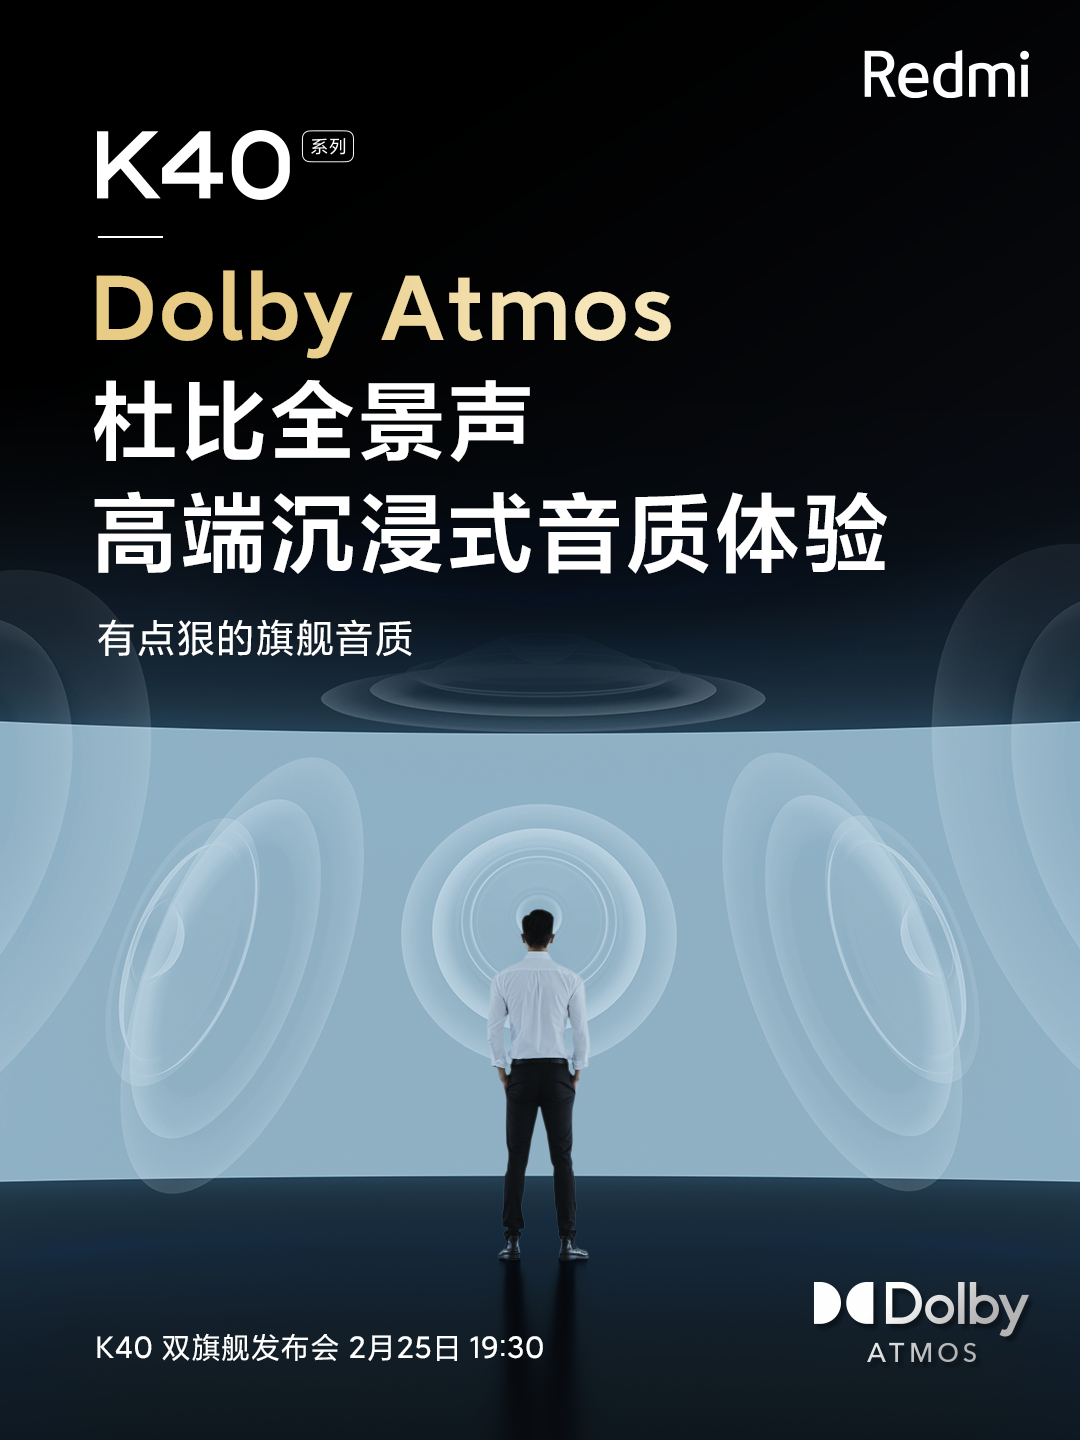 The Redmi K40 Series will spare no expense and will also add Dolby Atmos sound